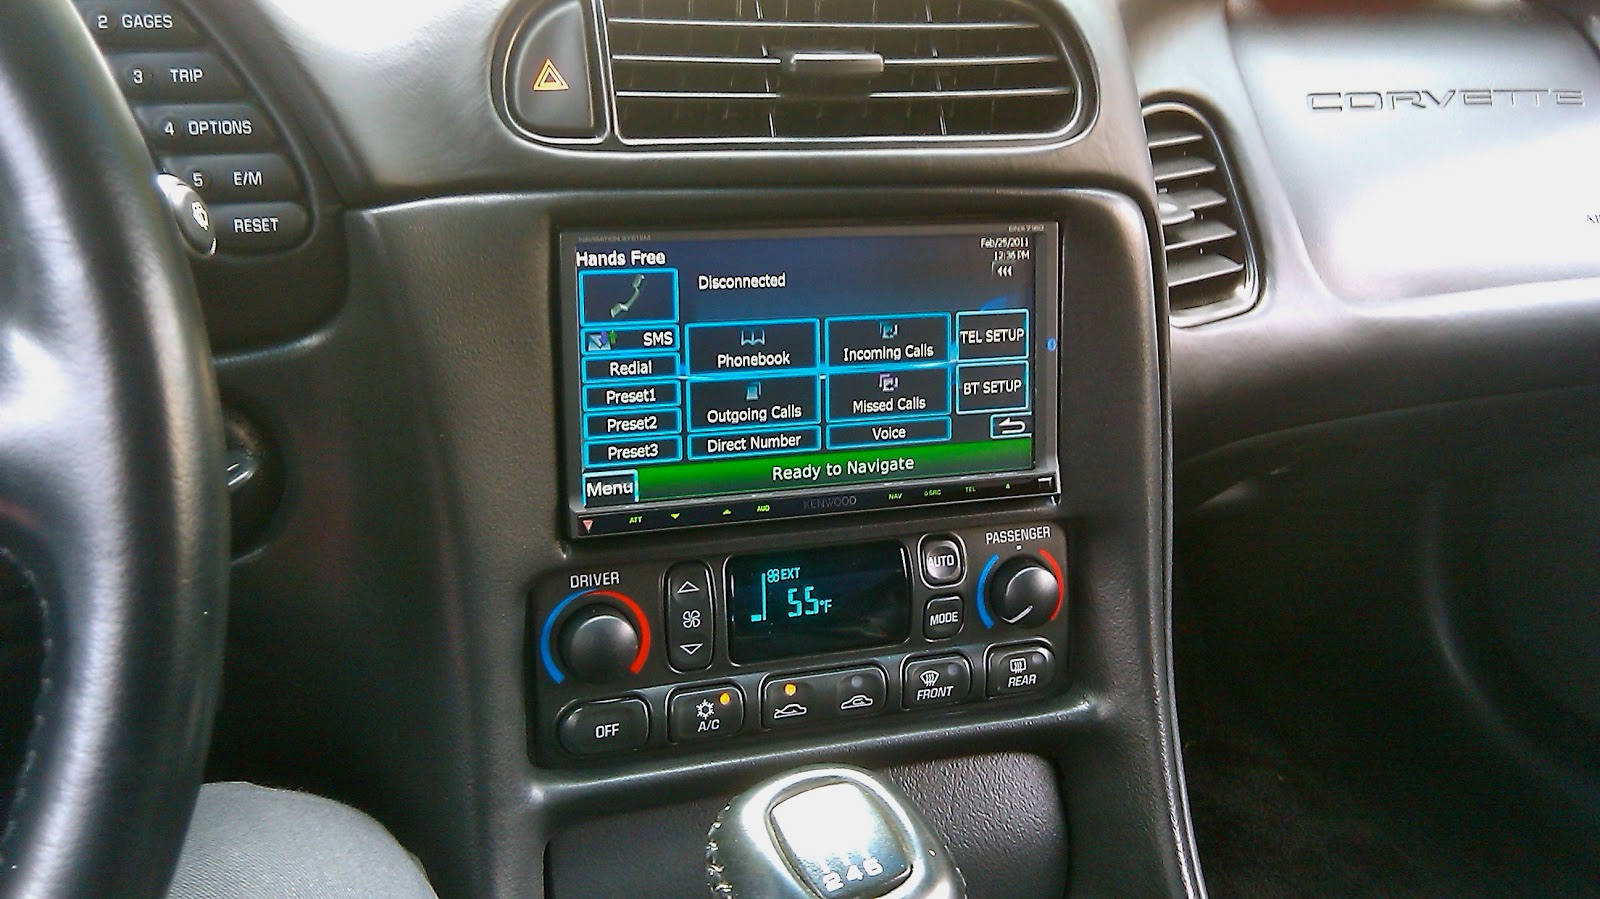 2001 Chevy Tahoe Stereo Wiring Diagram 38 Images 2007 Silverado 1998 Radio The Best 2017 1997 1999 2000 2002 2003 2004 Corvette Custom Indash Jeremy